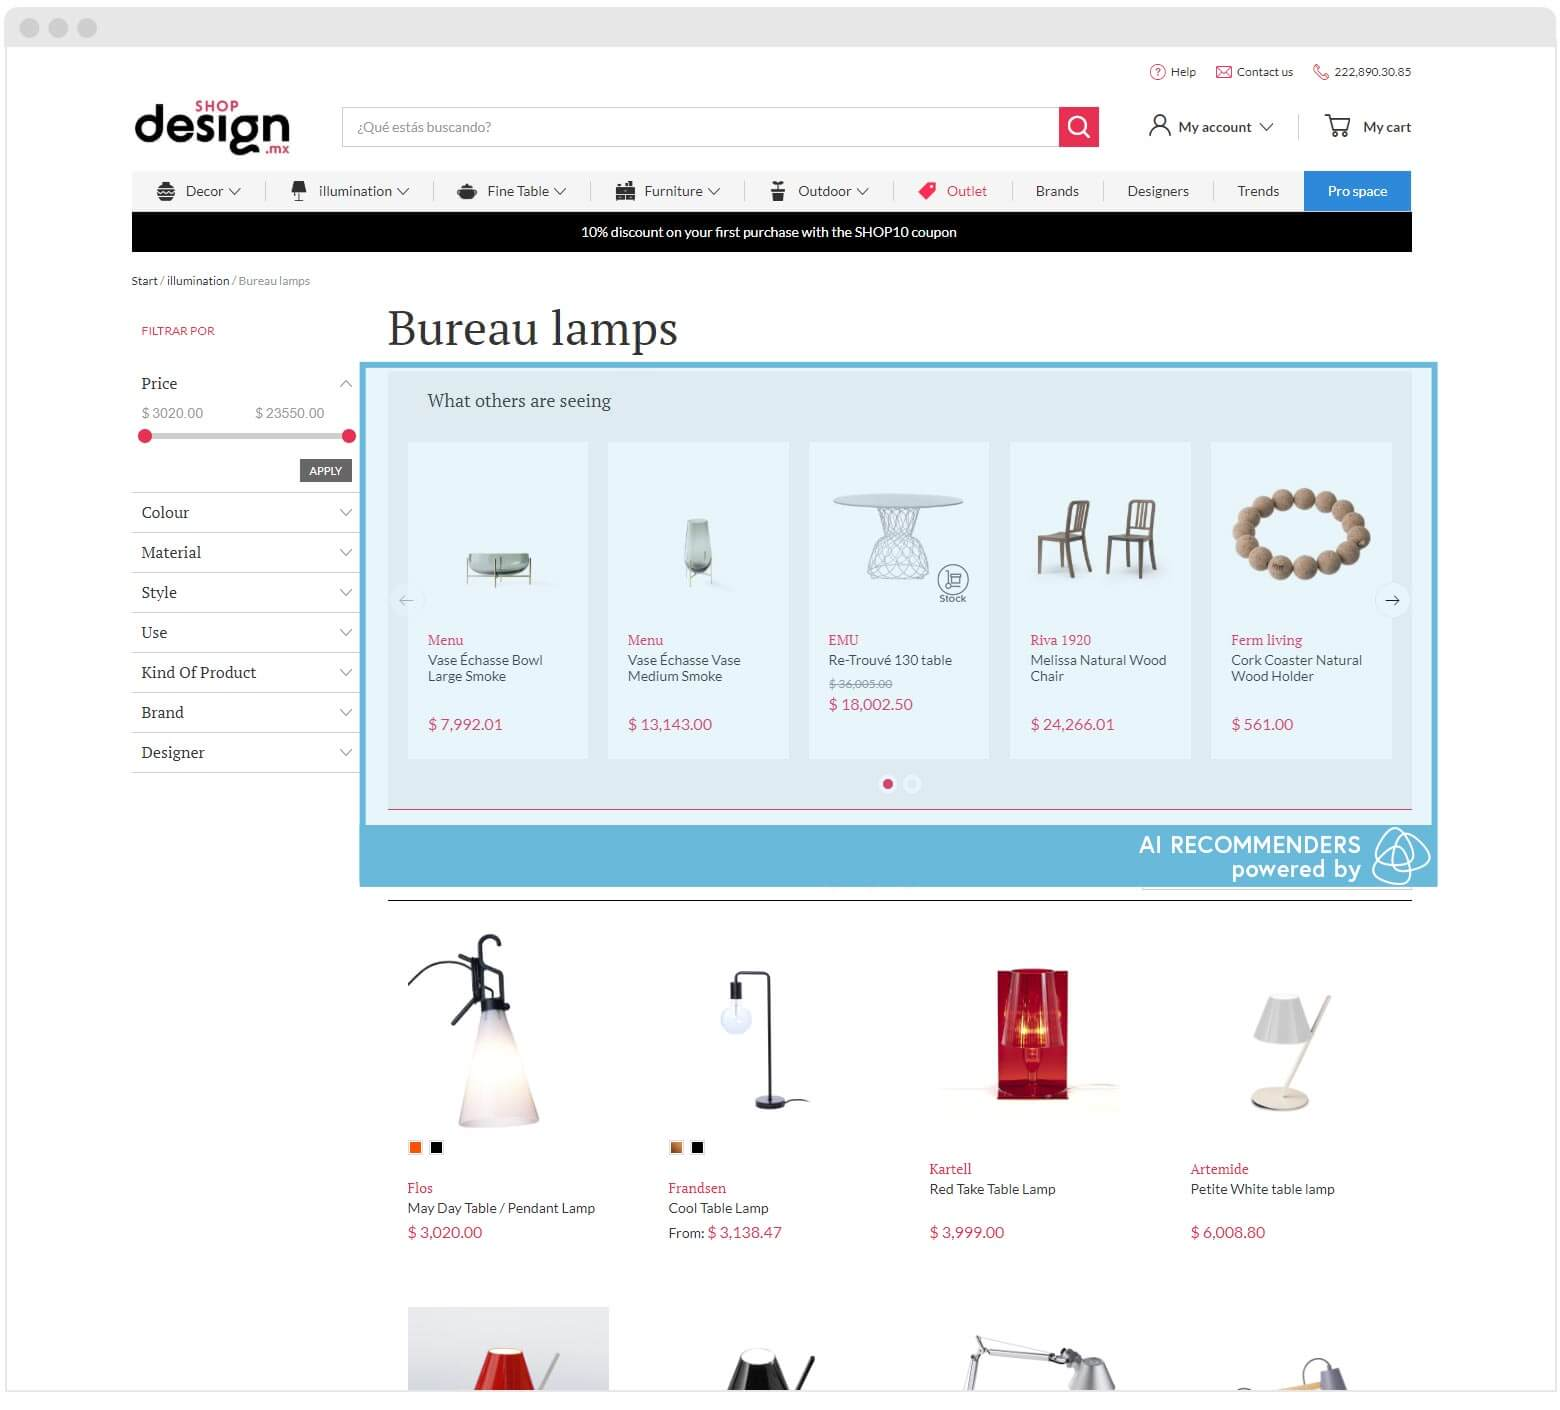 Shopdesign Personalisation in Search